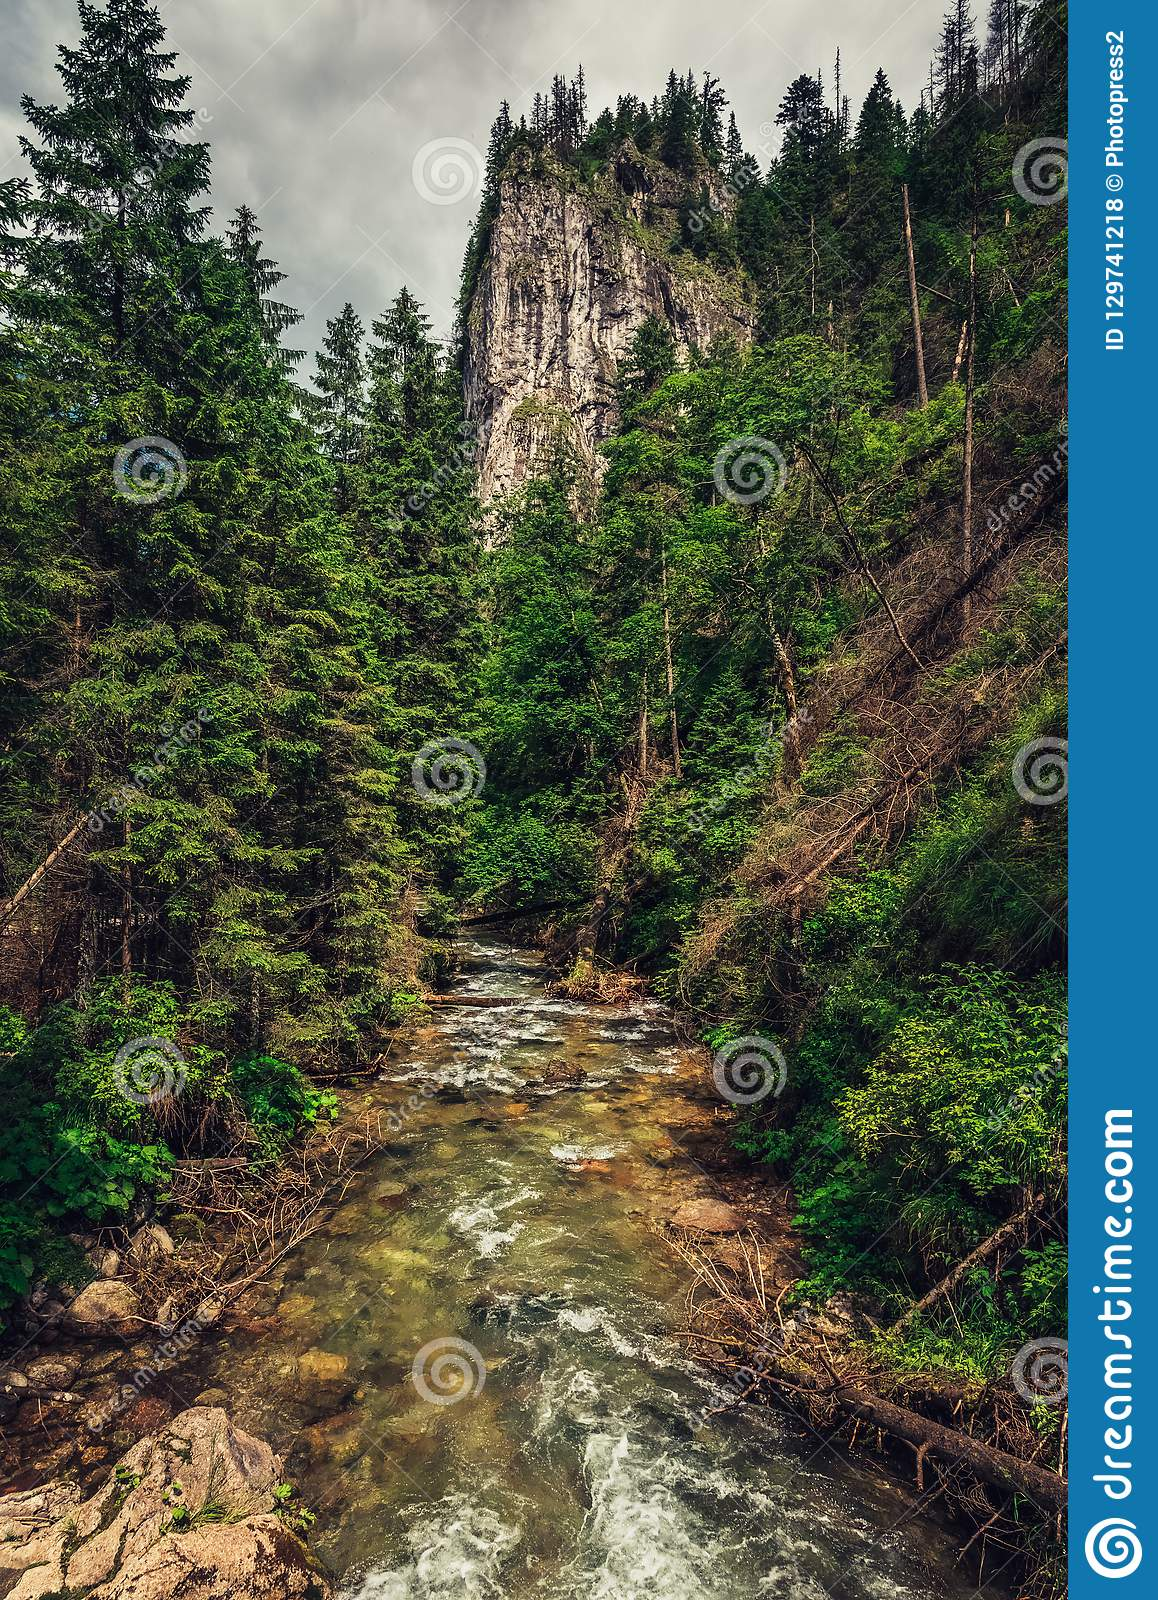 Mountain creek / river flowing between the forest.